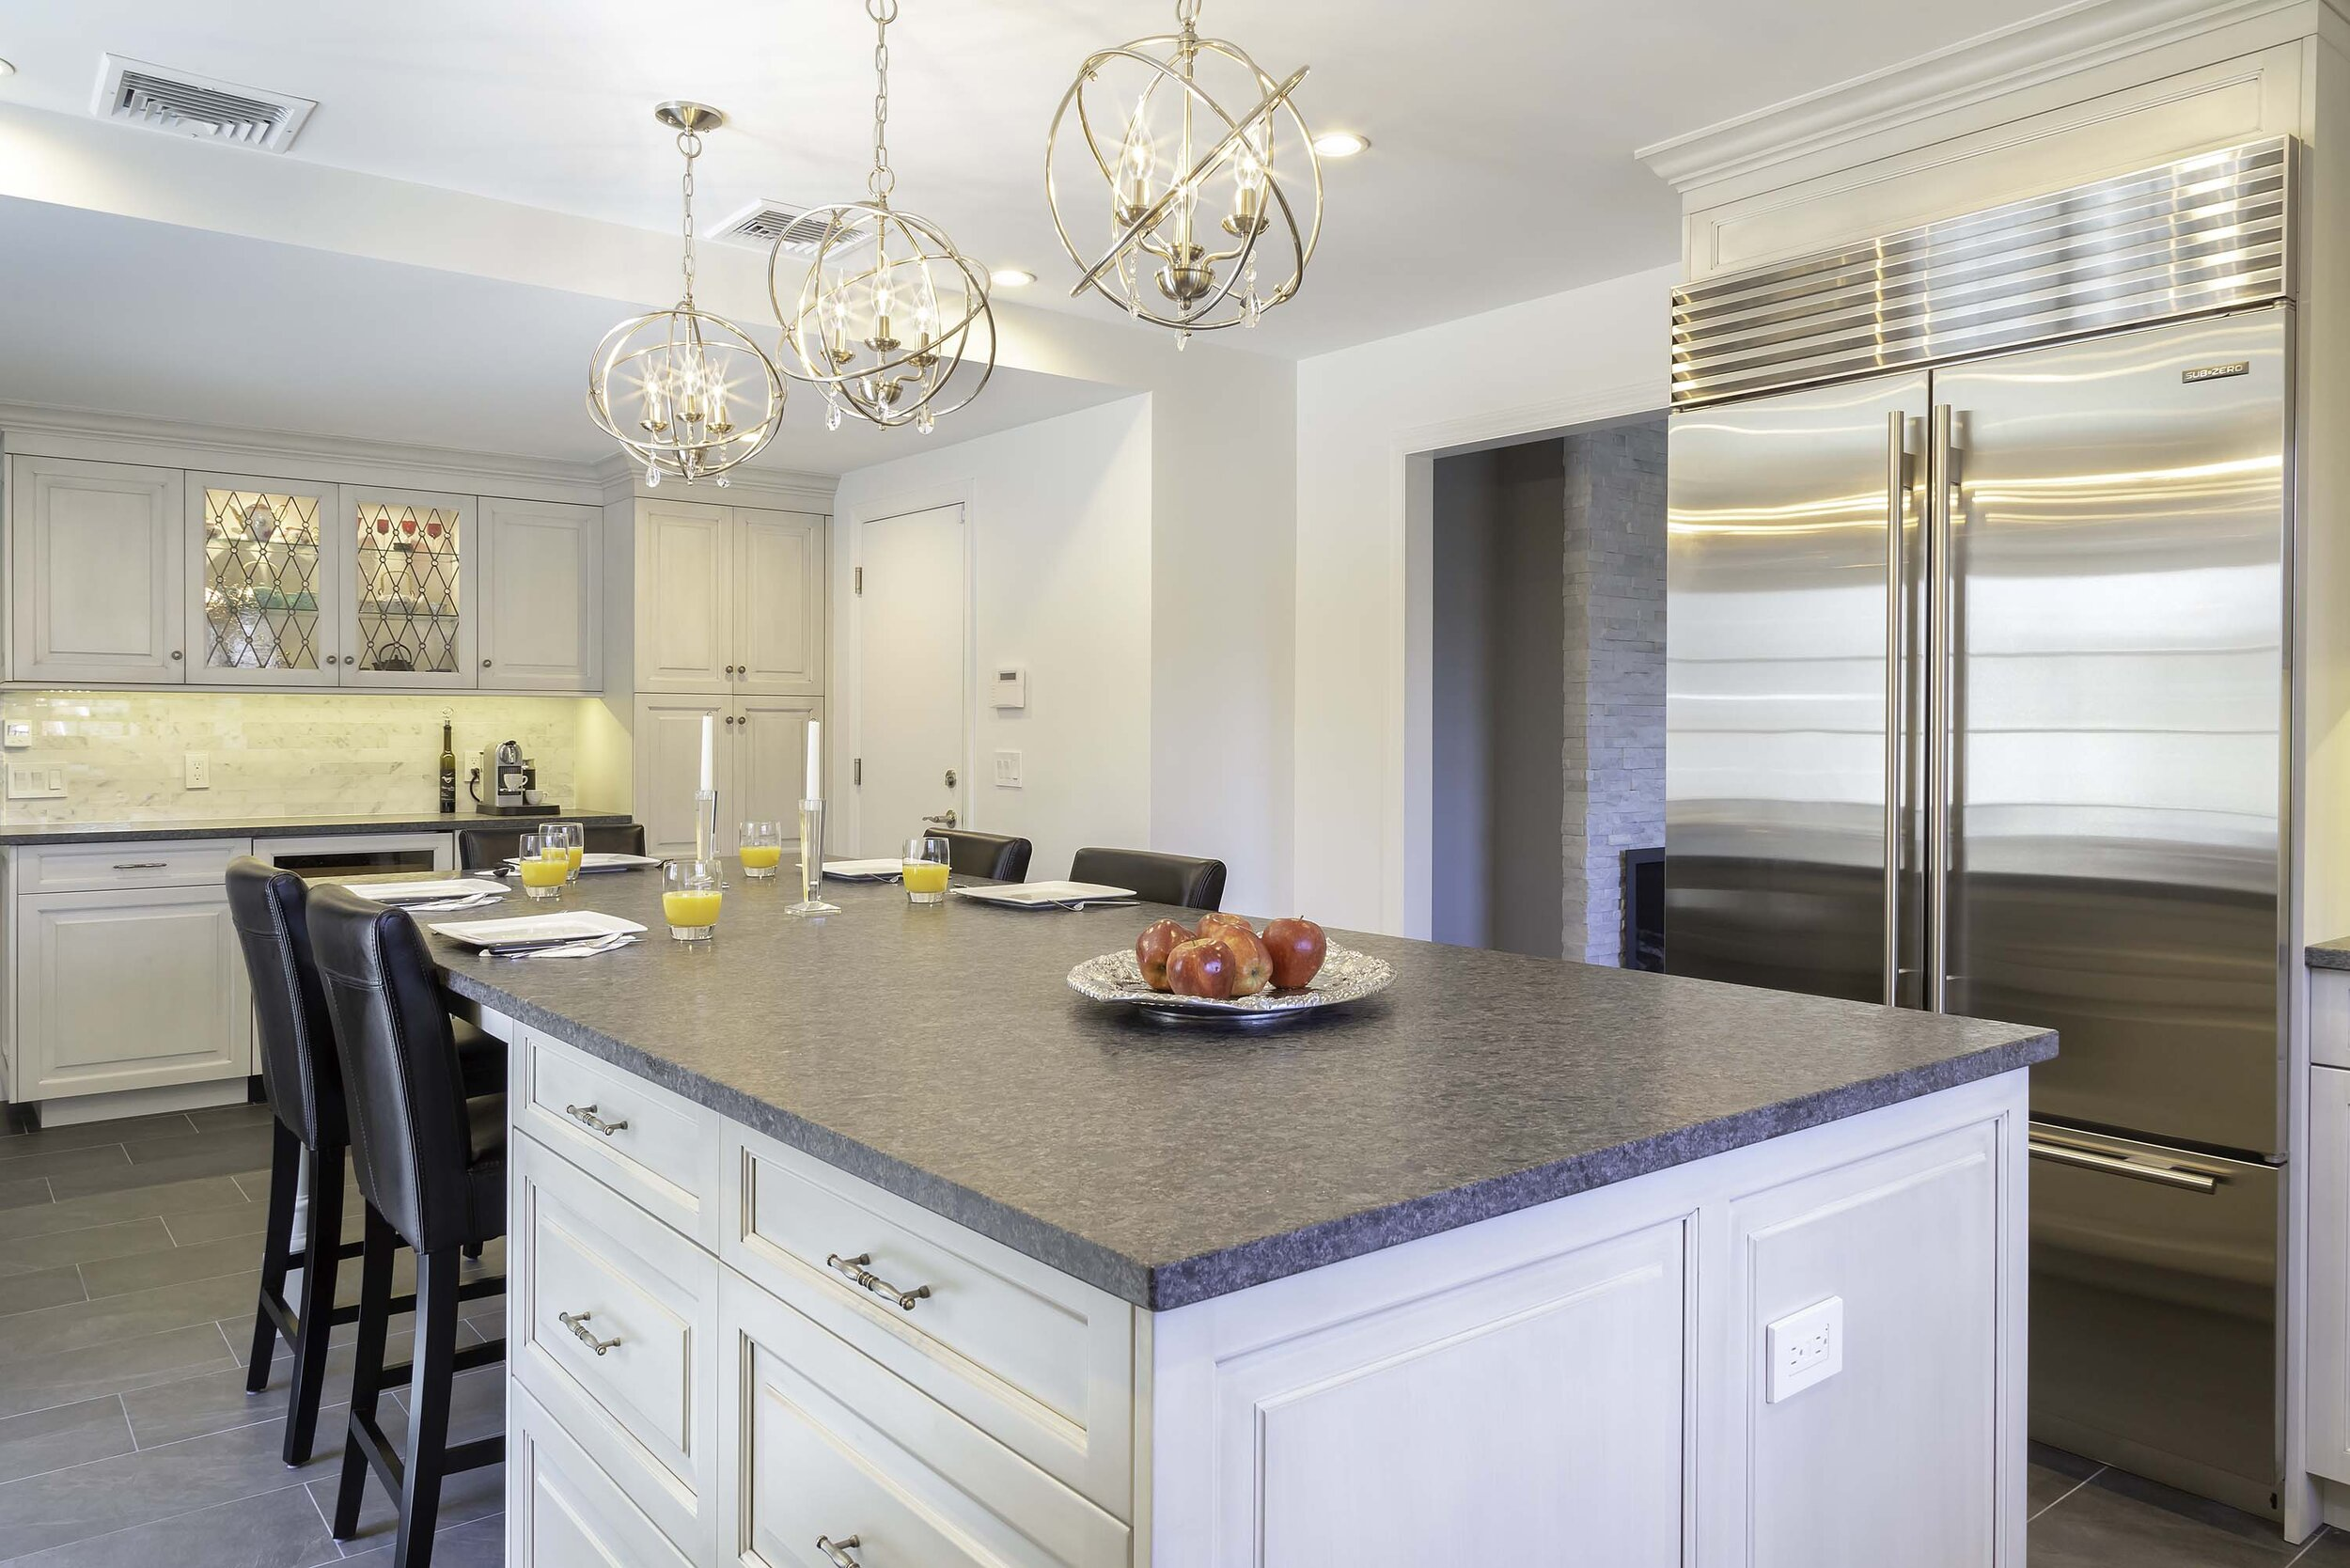 Long Island kitchen with extra-large Sub-Zero refrigerator freezer and granite countertop